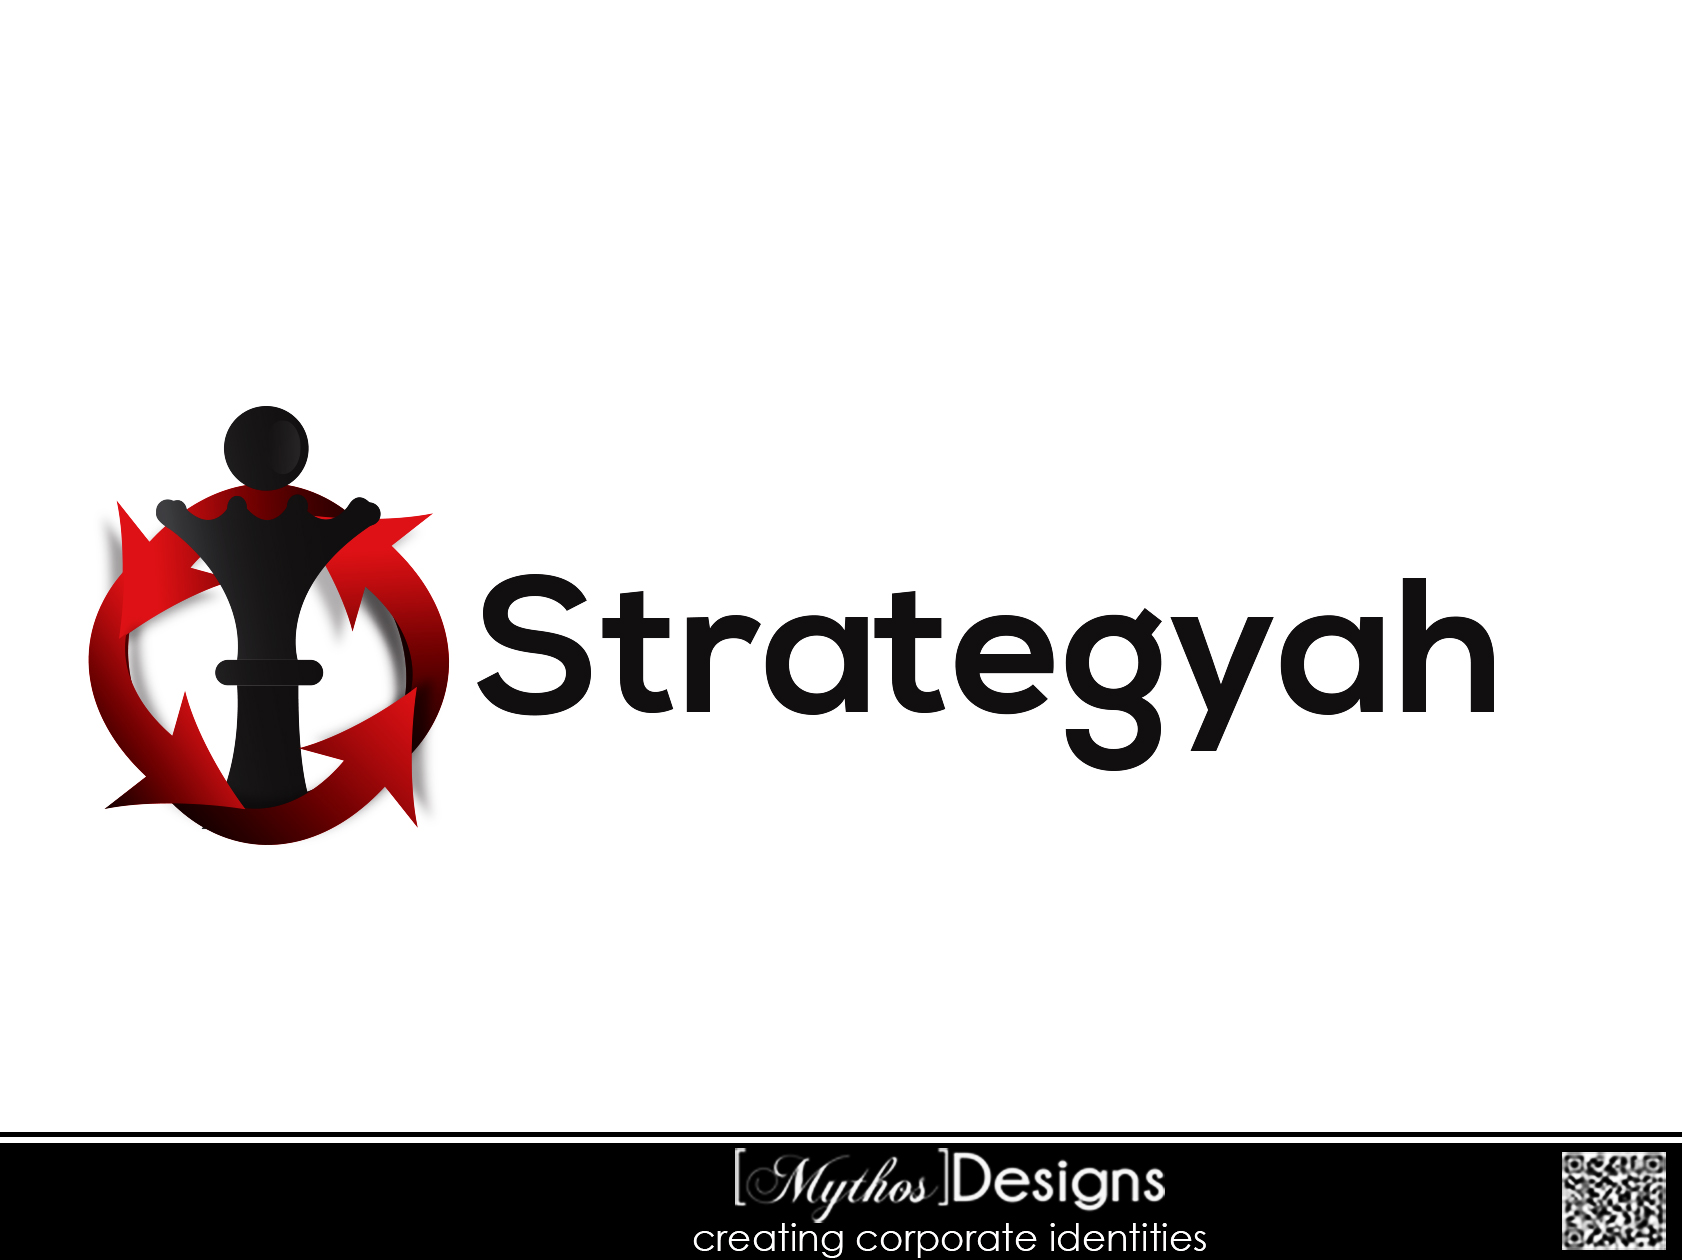 Logo Design by Mythos Designs - Entry No. 154 in the Logo Design Contest Creative Logo Design for Strategyah.